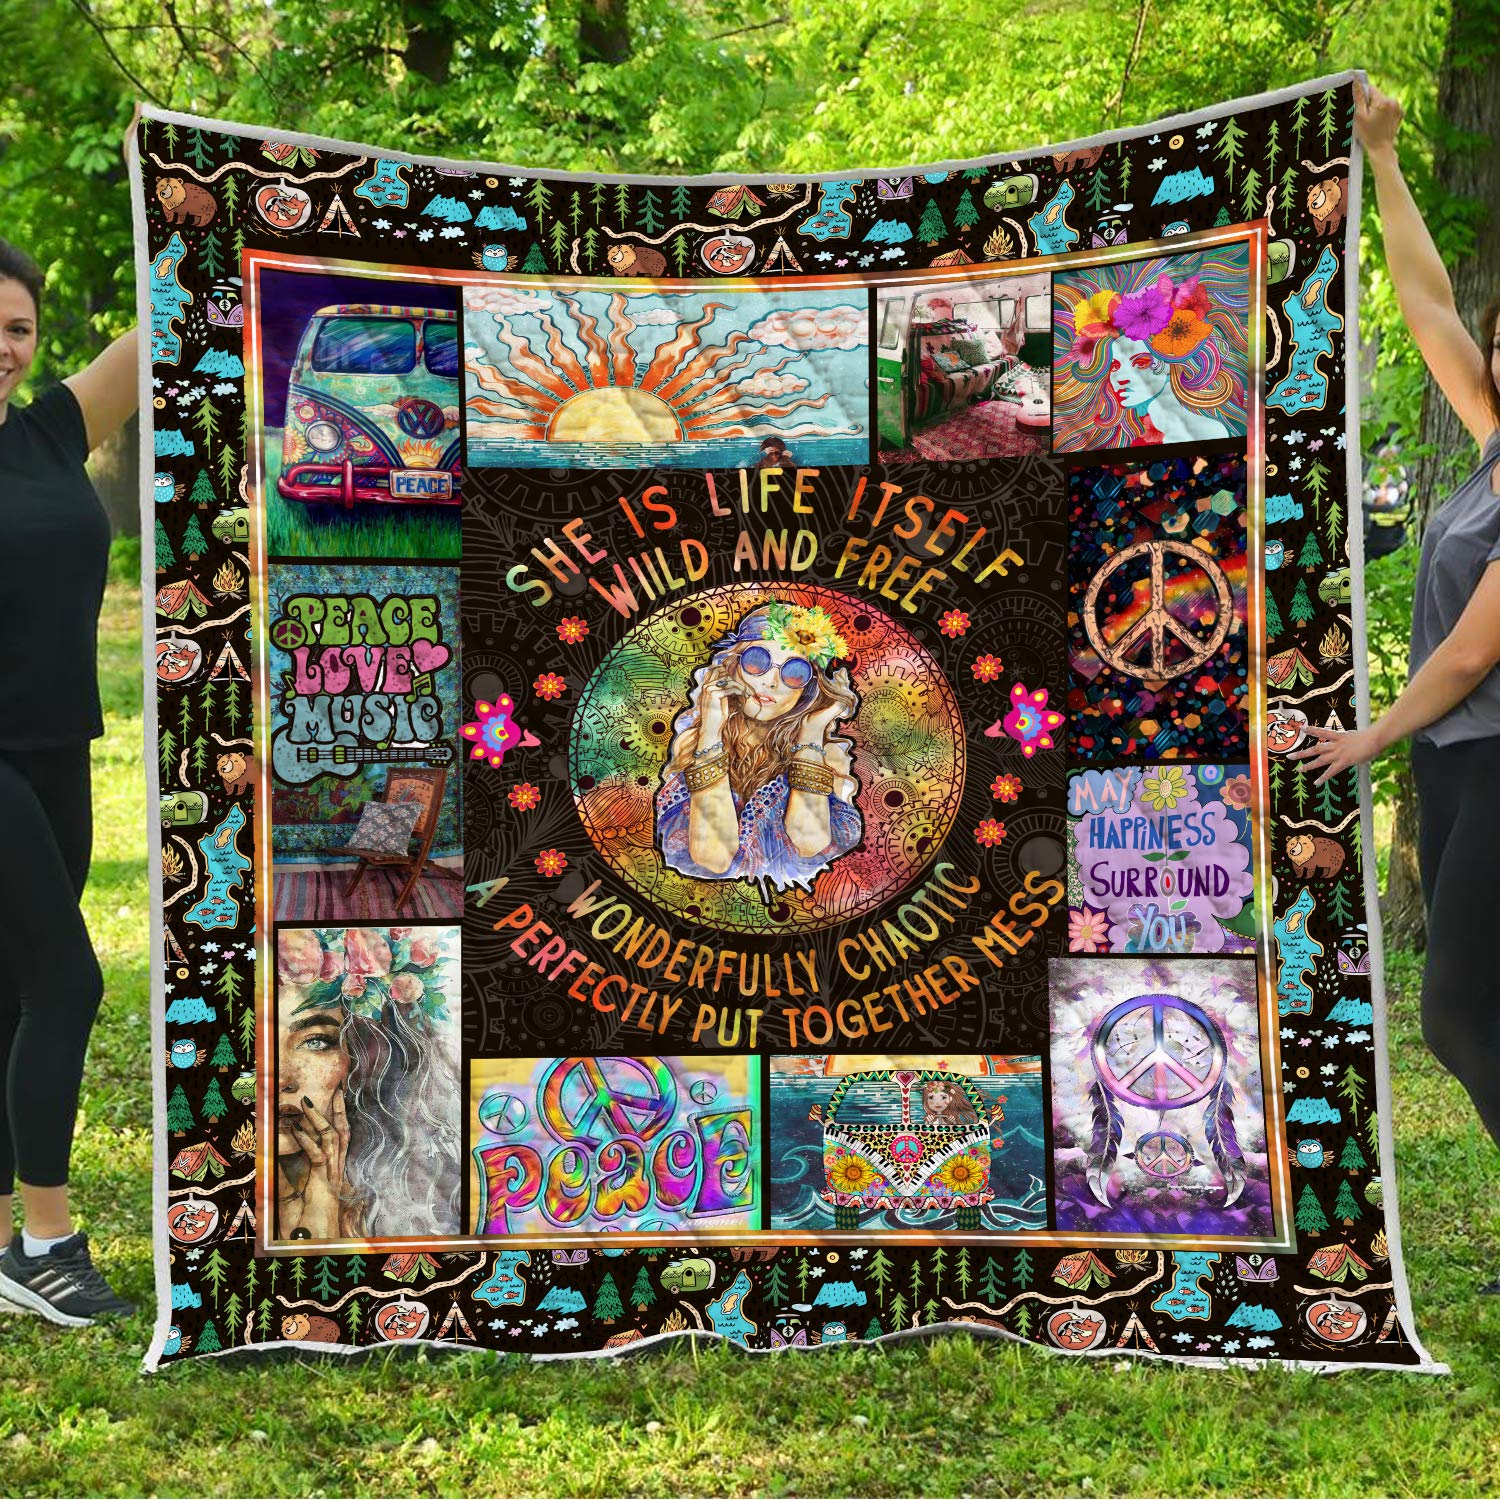 VTH Global Hippie Girls Quilt Blankets Comforters with Reversible Cotton King Queen Full Twin Size Christmas Birthday Mandala Bohemian Boho Sign Symbol Gifts for Women Kids Teens Daughter Mom by VTH Global